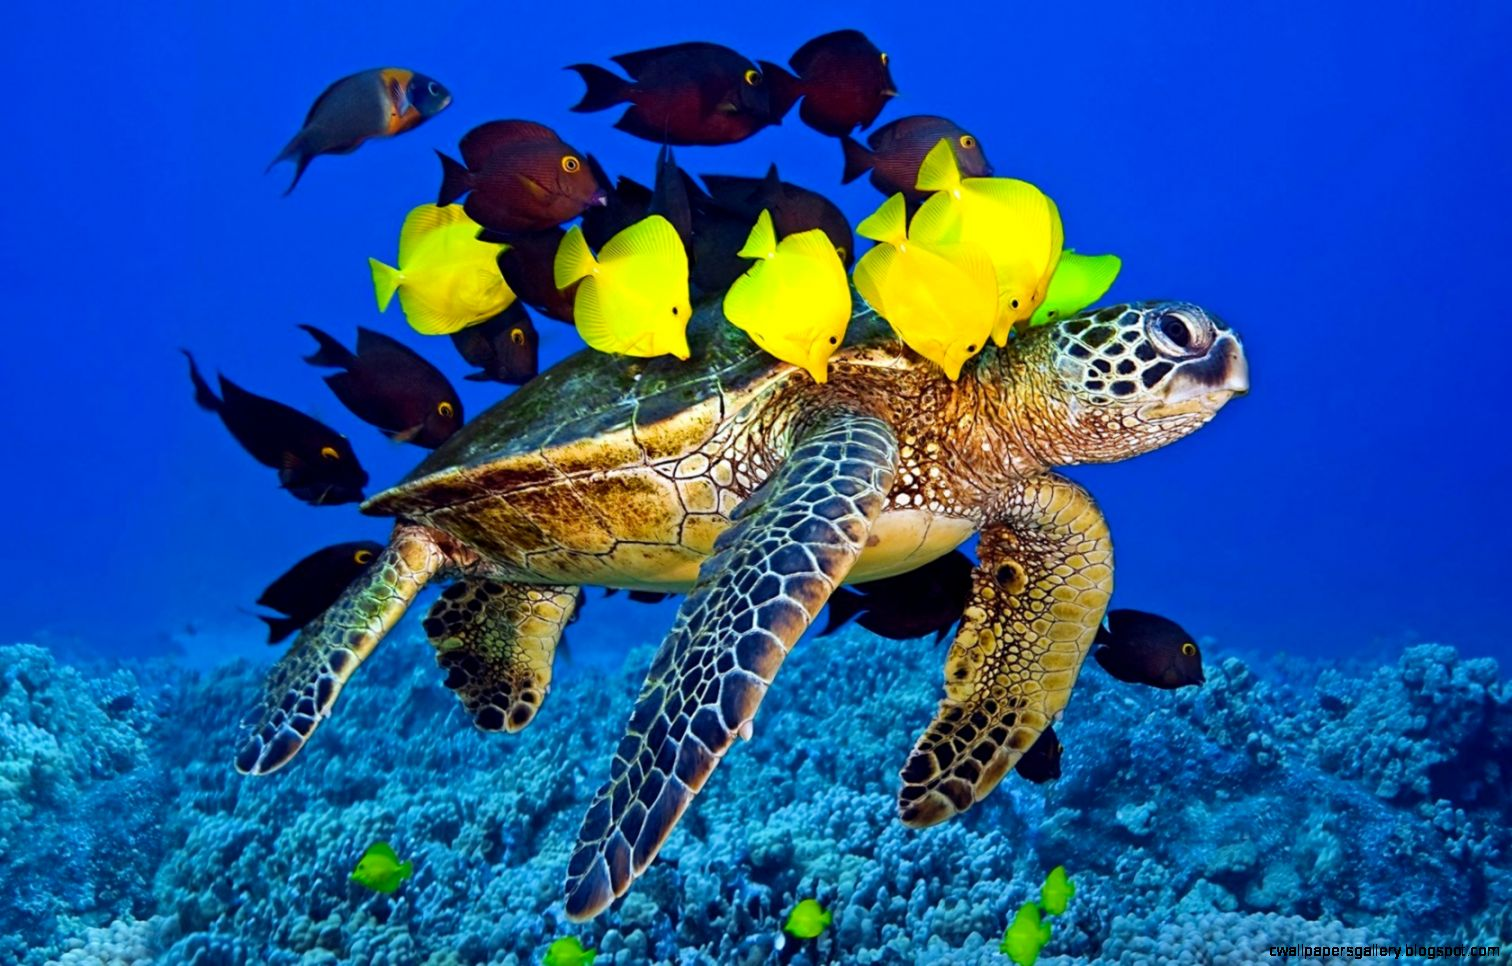 Download Turtle Yellow Fish Underwater Ocean Awesome Wallpaper